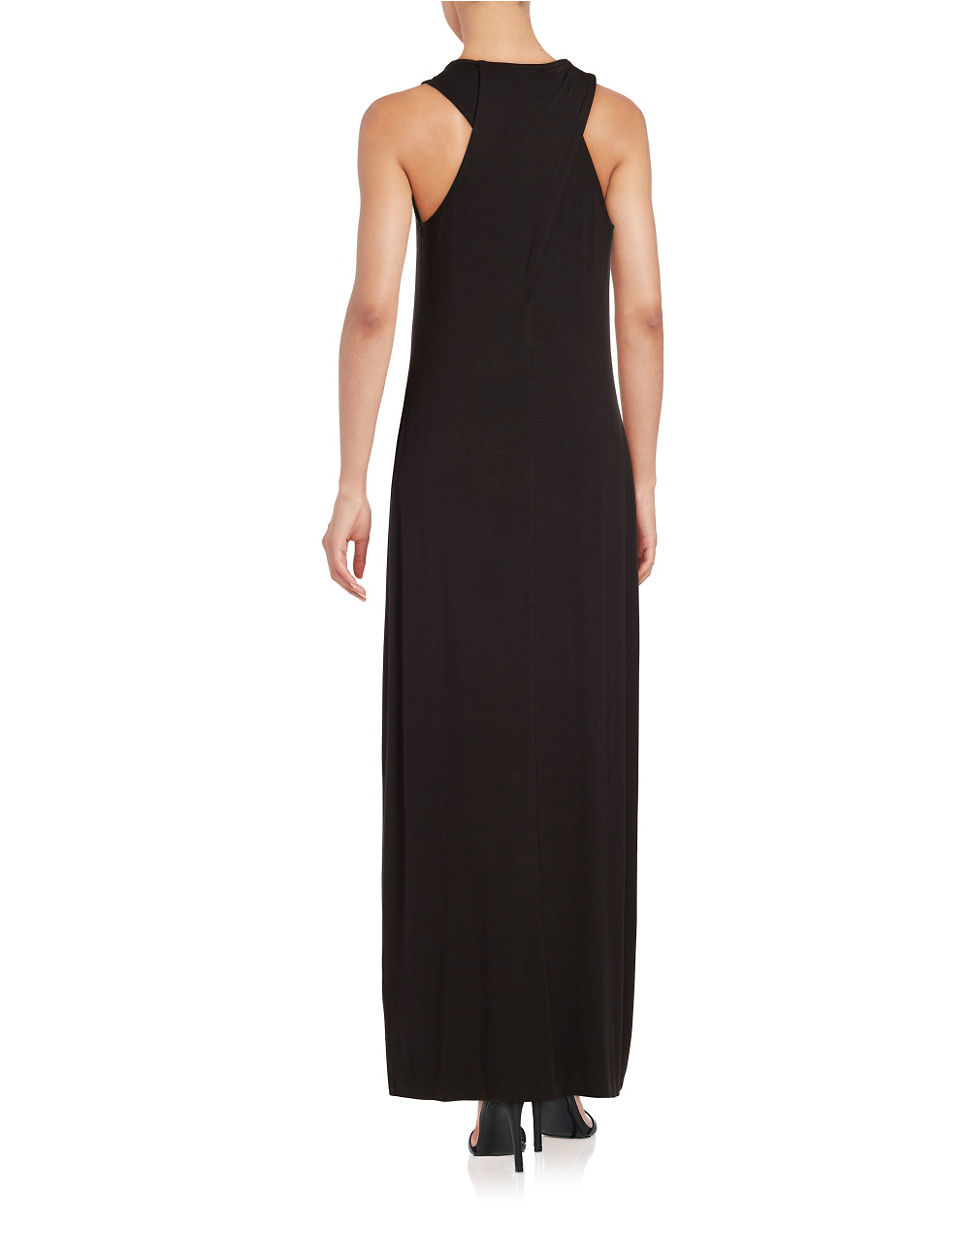 Lord and taylor black maxi dress